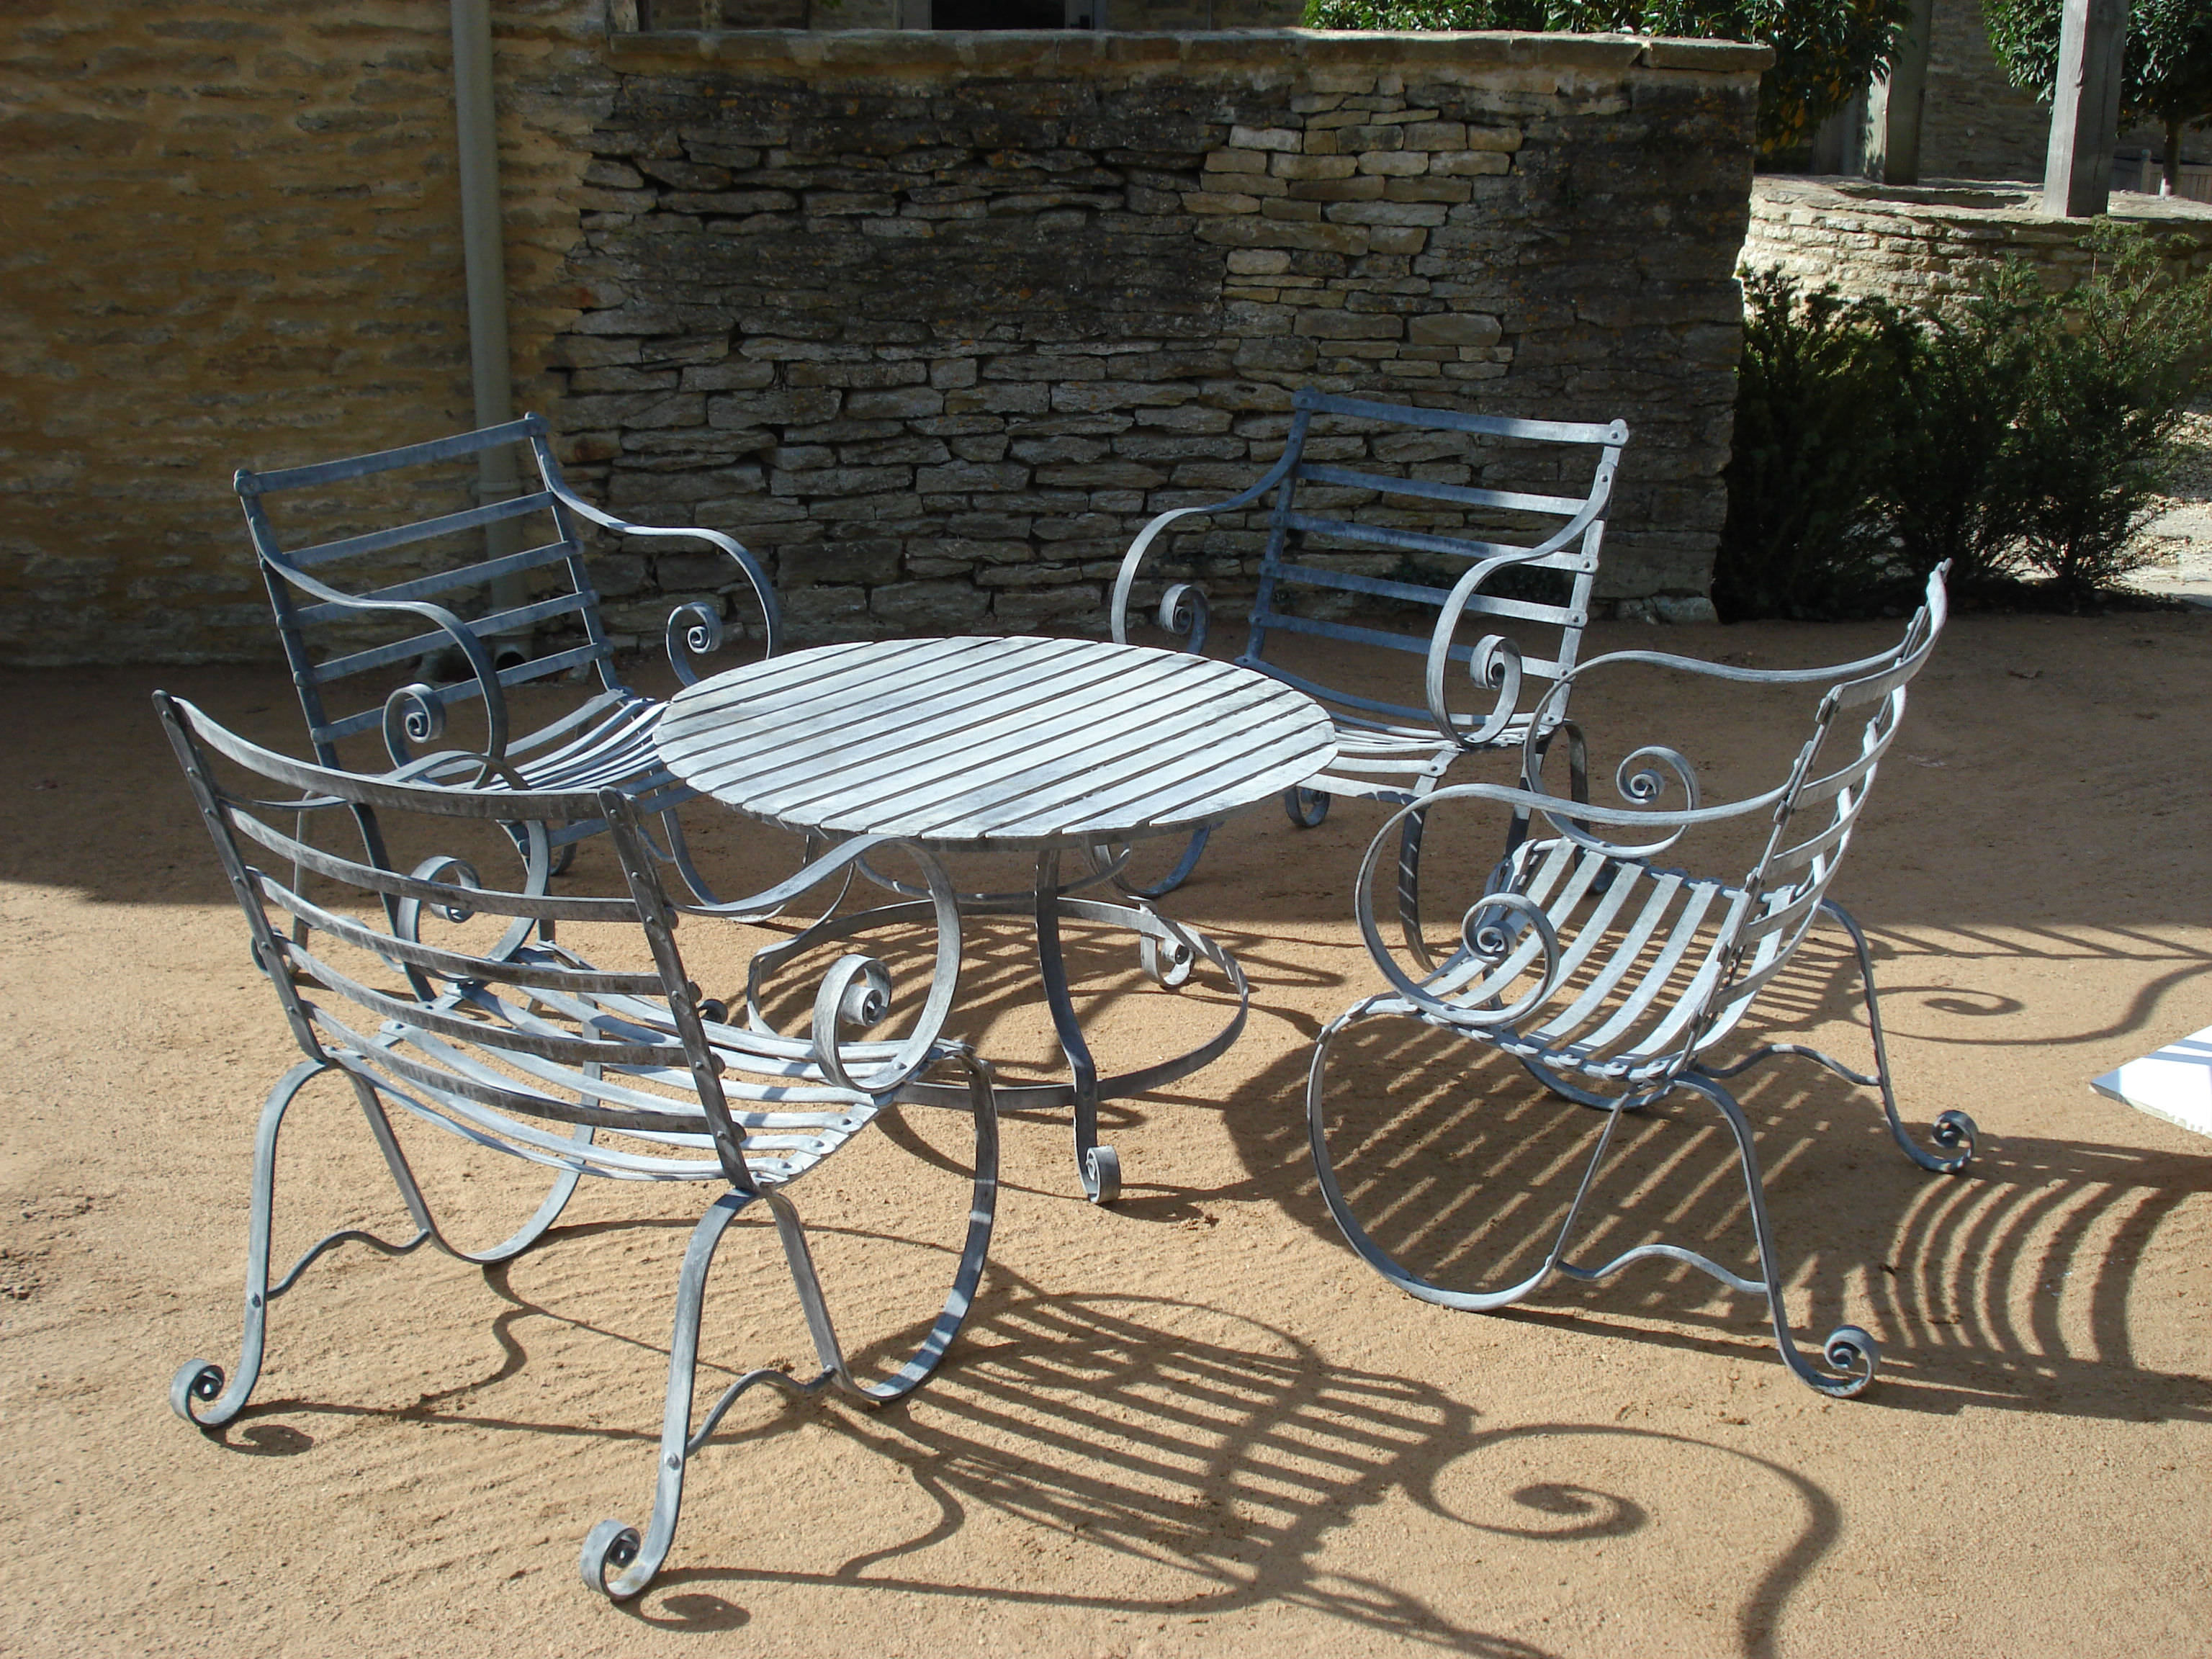 bespoke garden furniture from gedding mill